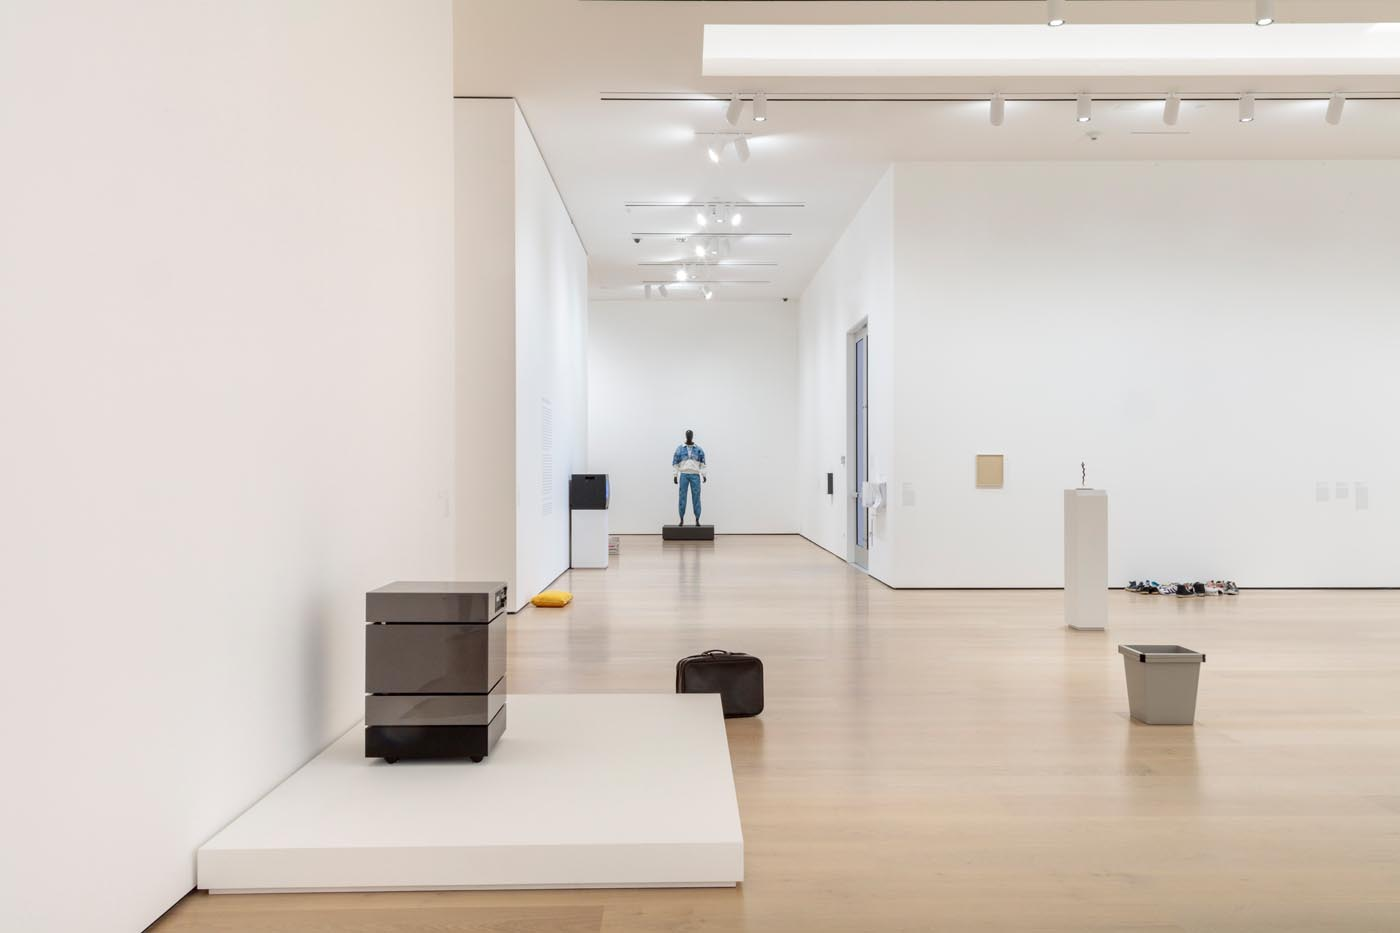 <p>exhibition view<br />photo: Brian Forrest, Image courtesy of the Hammer Museum</p>